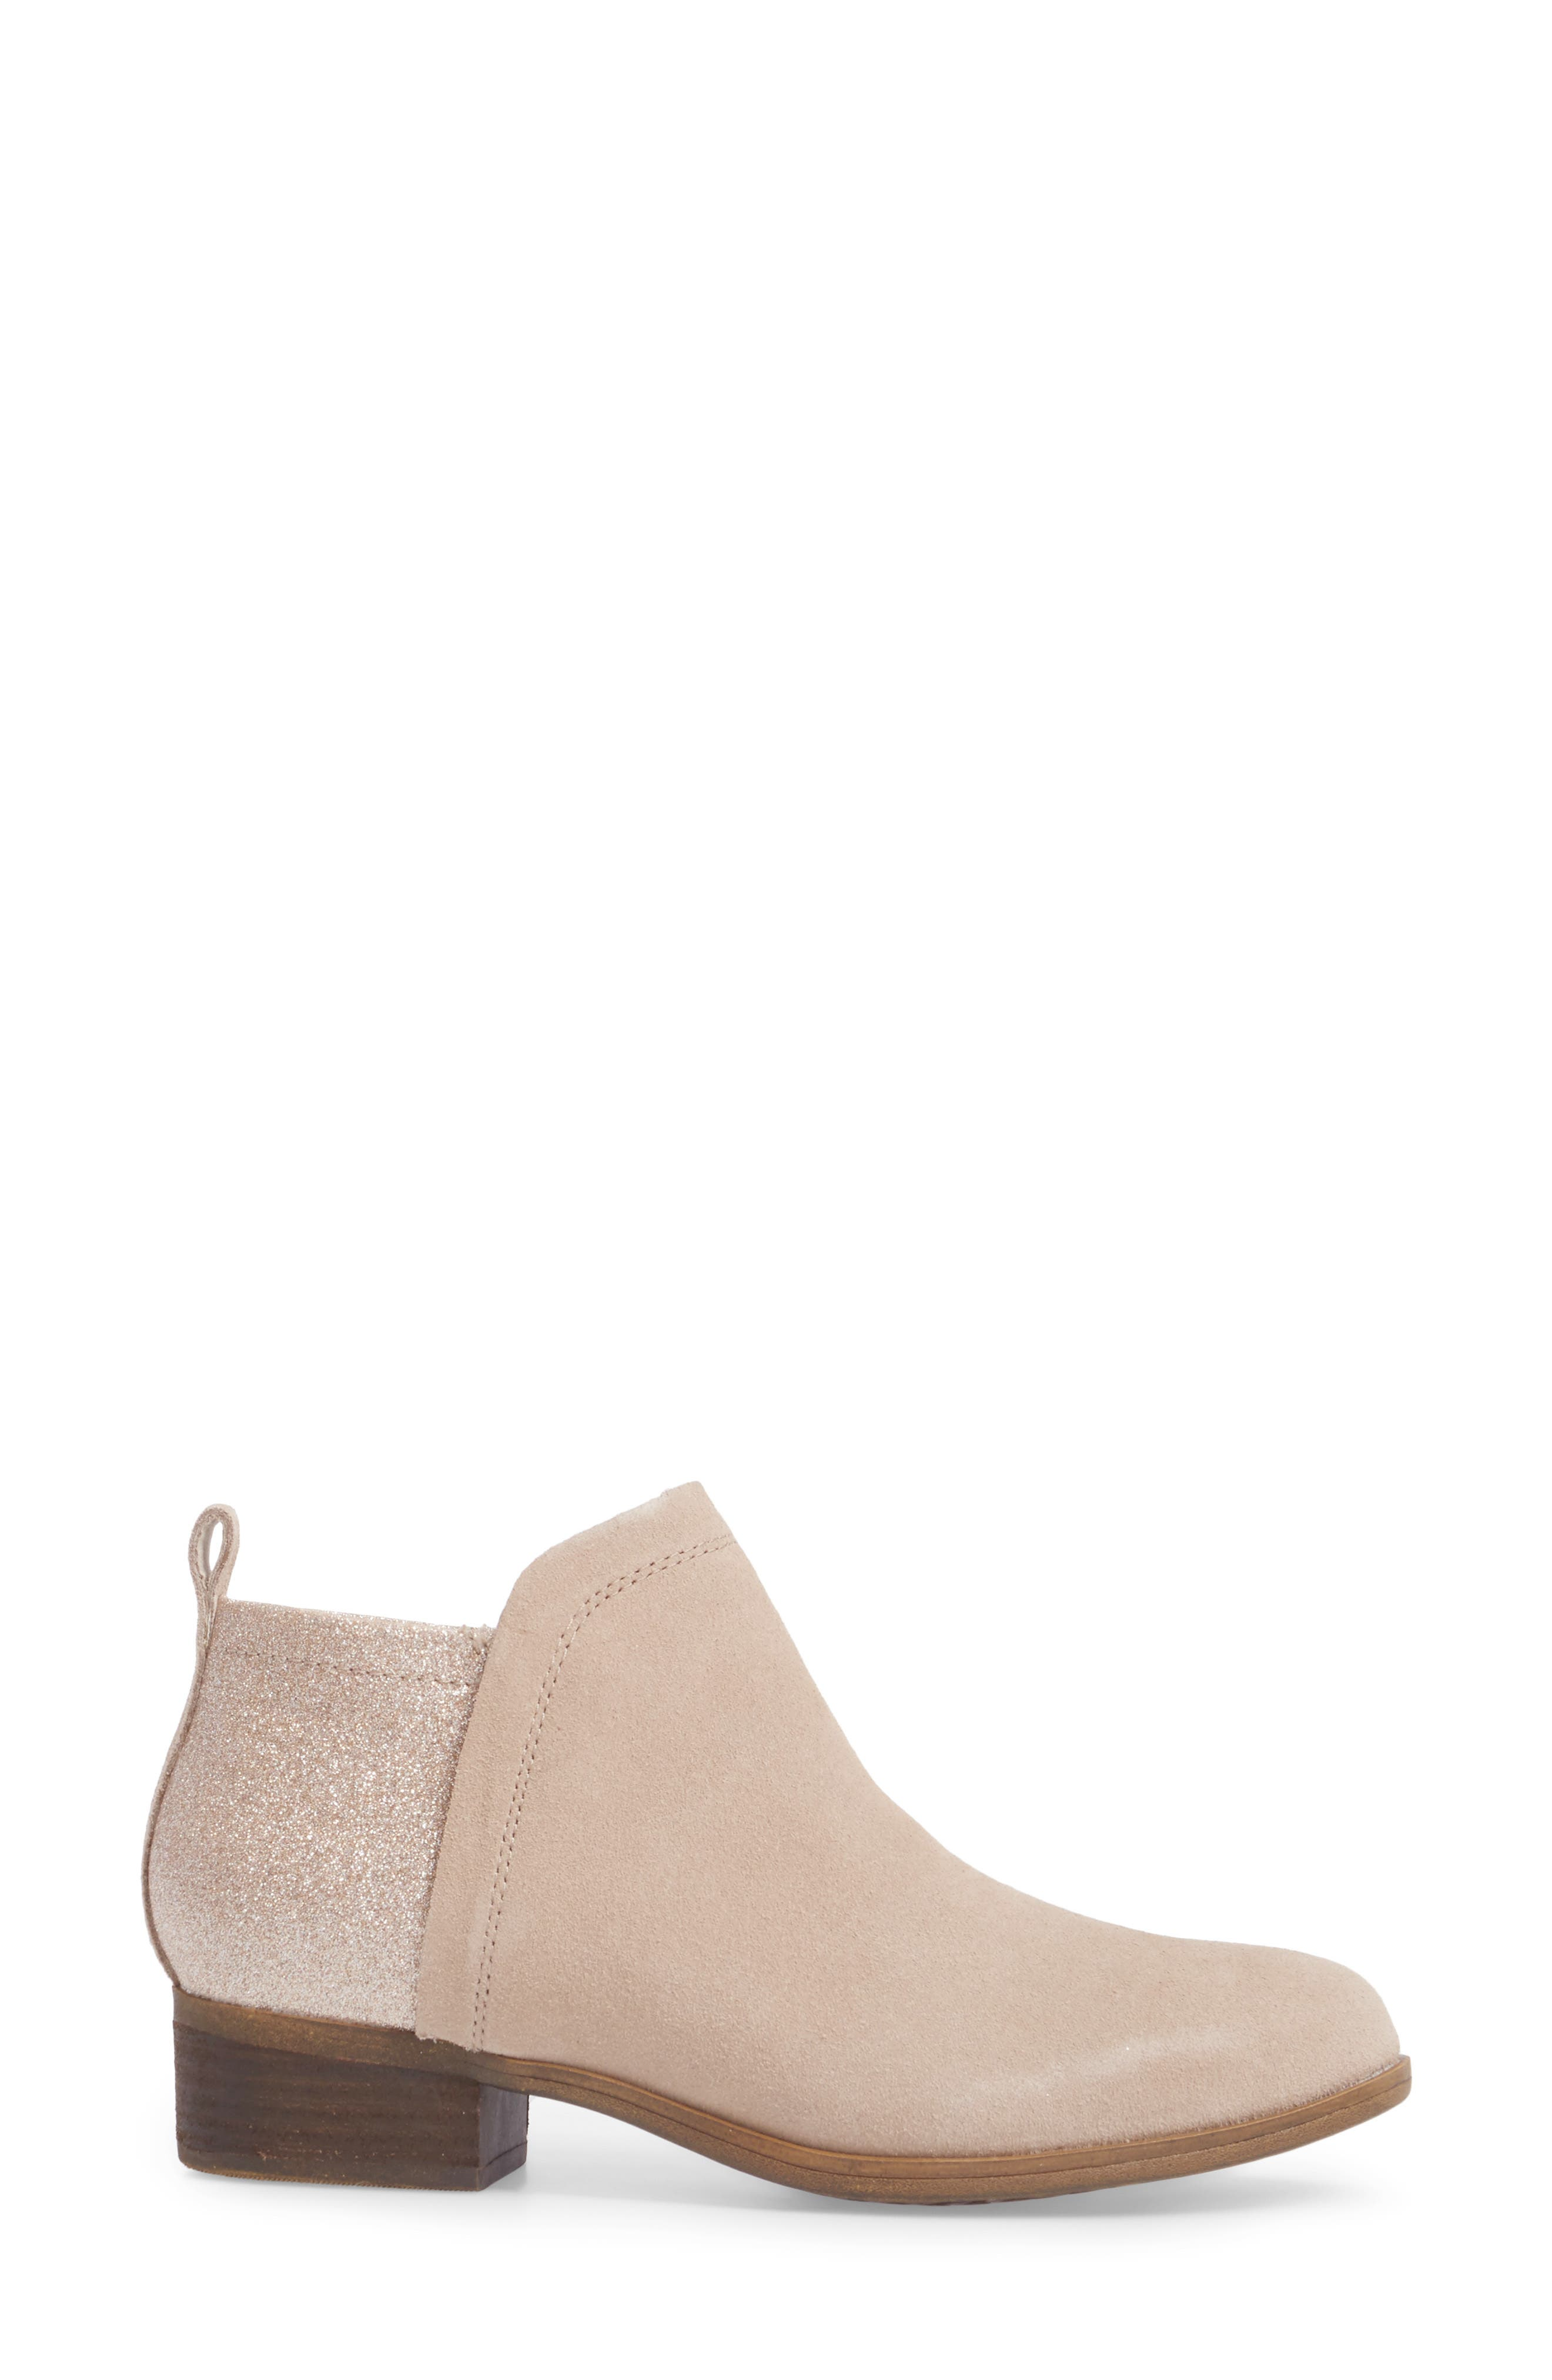 Deia Zip Bootie,                             Alternate thumbnail 26, color,